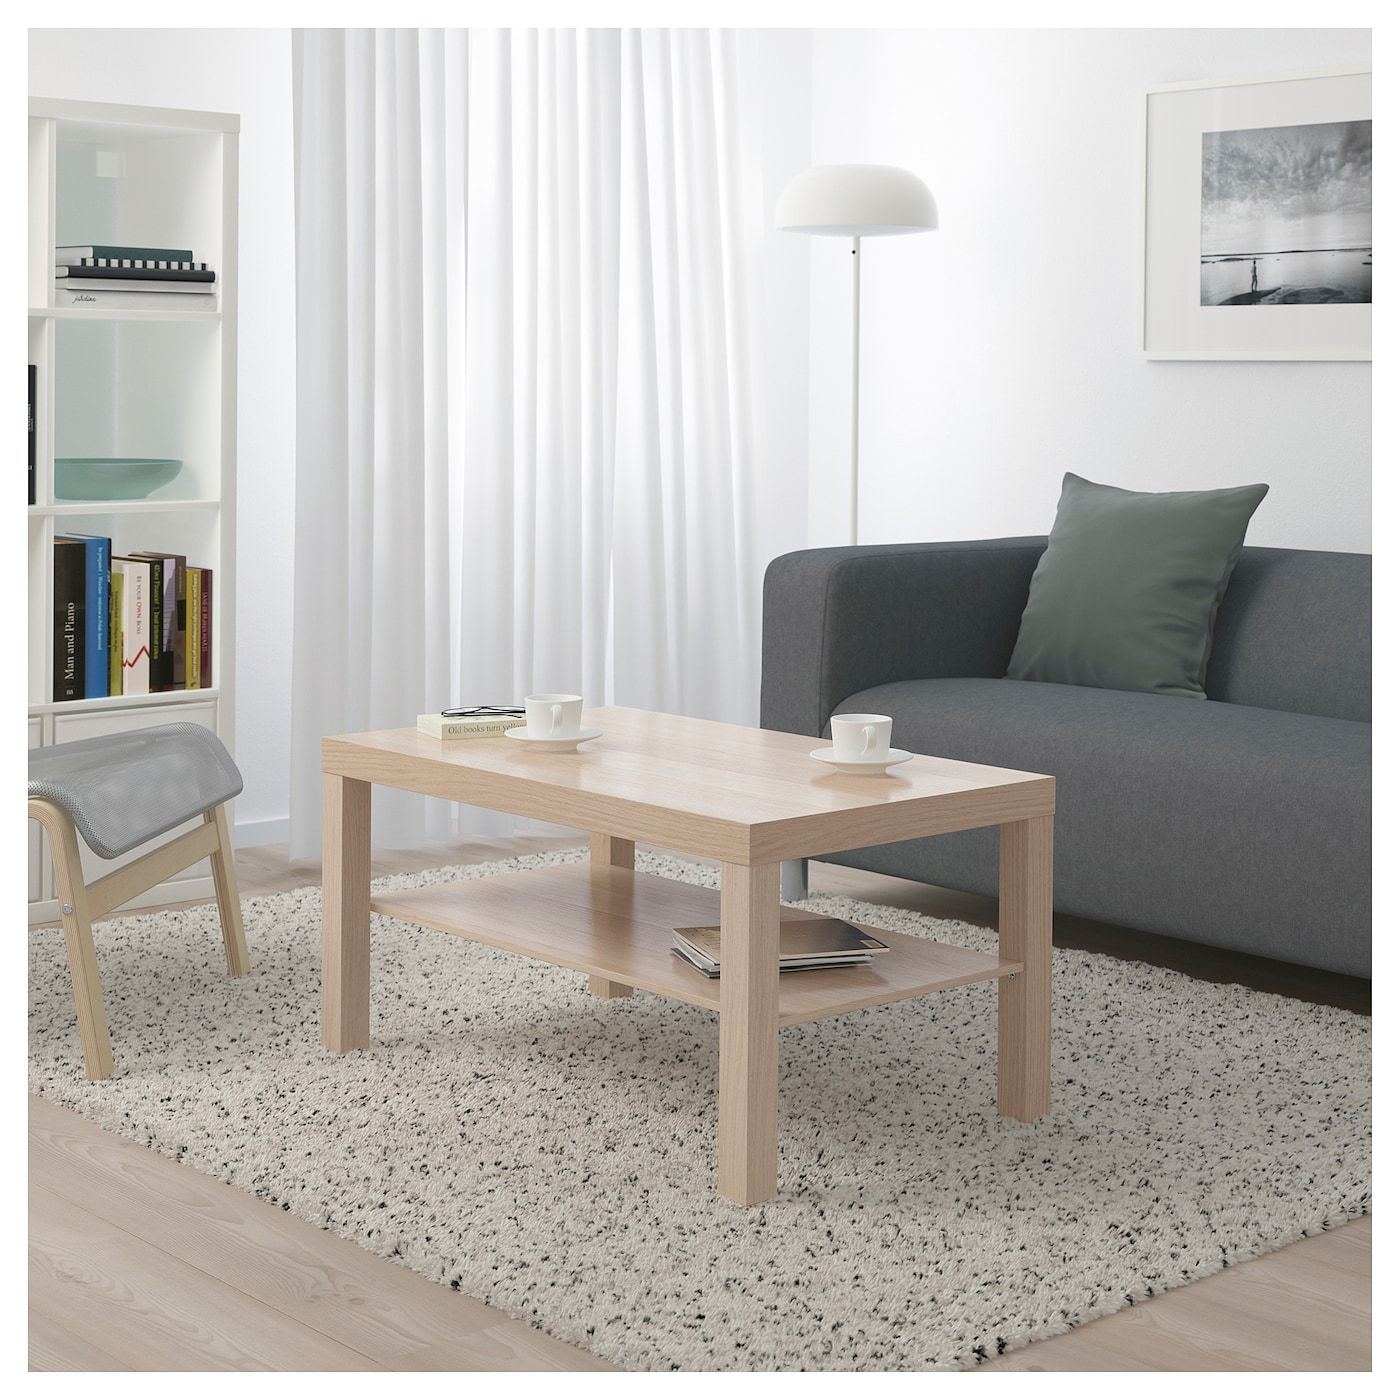 Lack Coffee Table White Stained Oak Effect 35 3 8x21 5 8 Ikea Lack Coffee Table Ikea Lack Coffee Table Ikea Coffee Table [ 1400 x 1400 Pixel ]